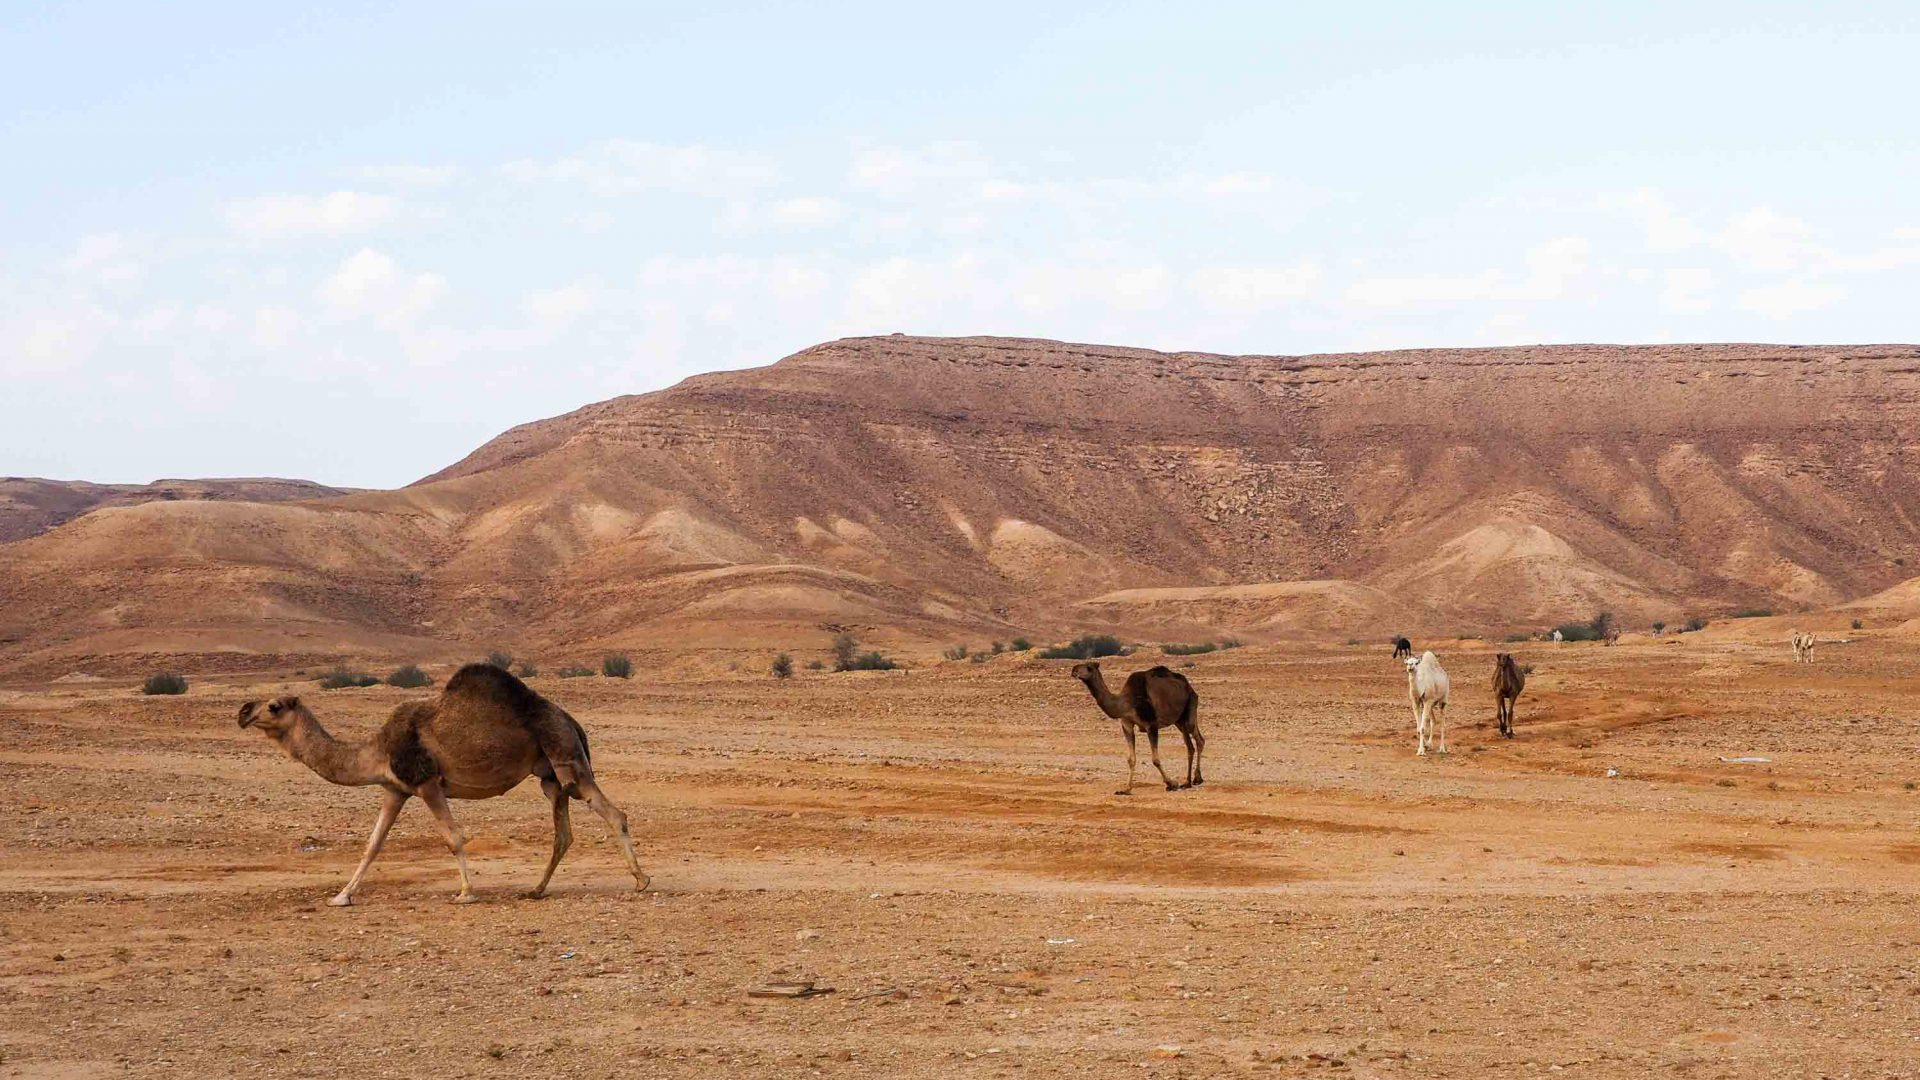 Camels en route to Jebel Fihrayn or the 'Edge of the World'.